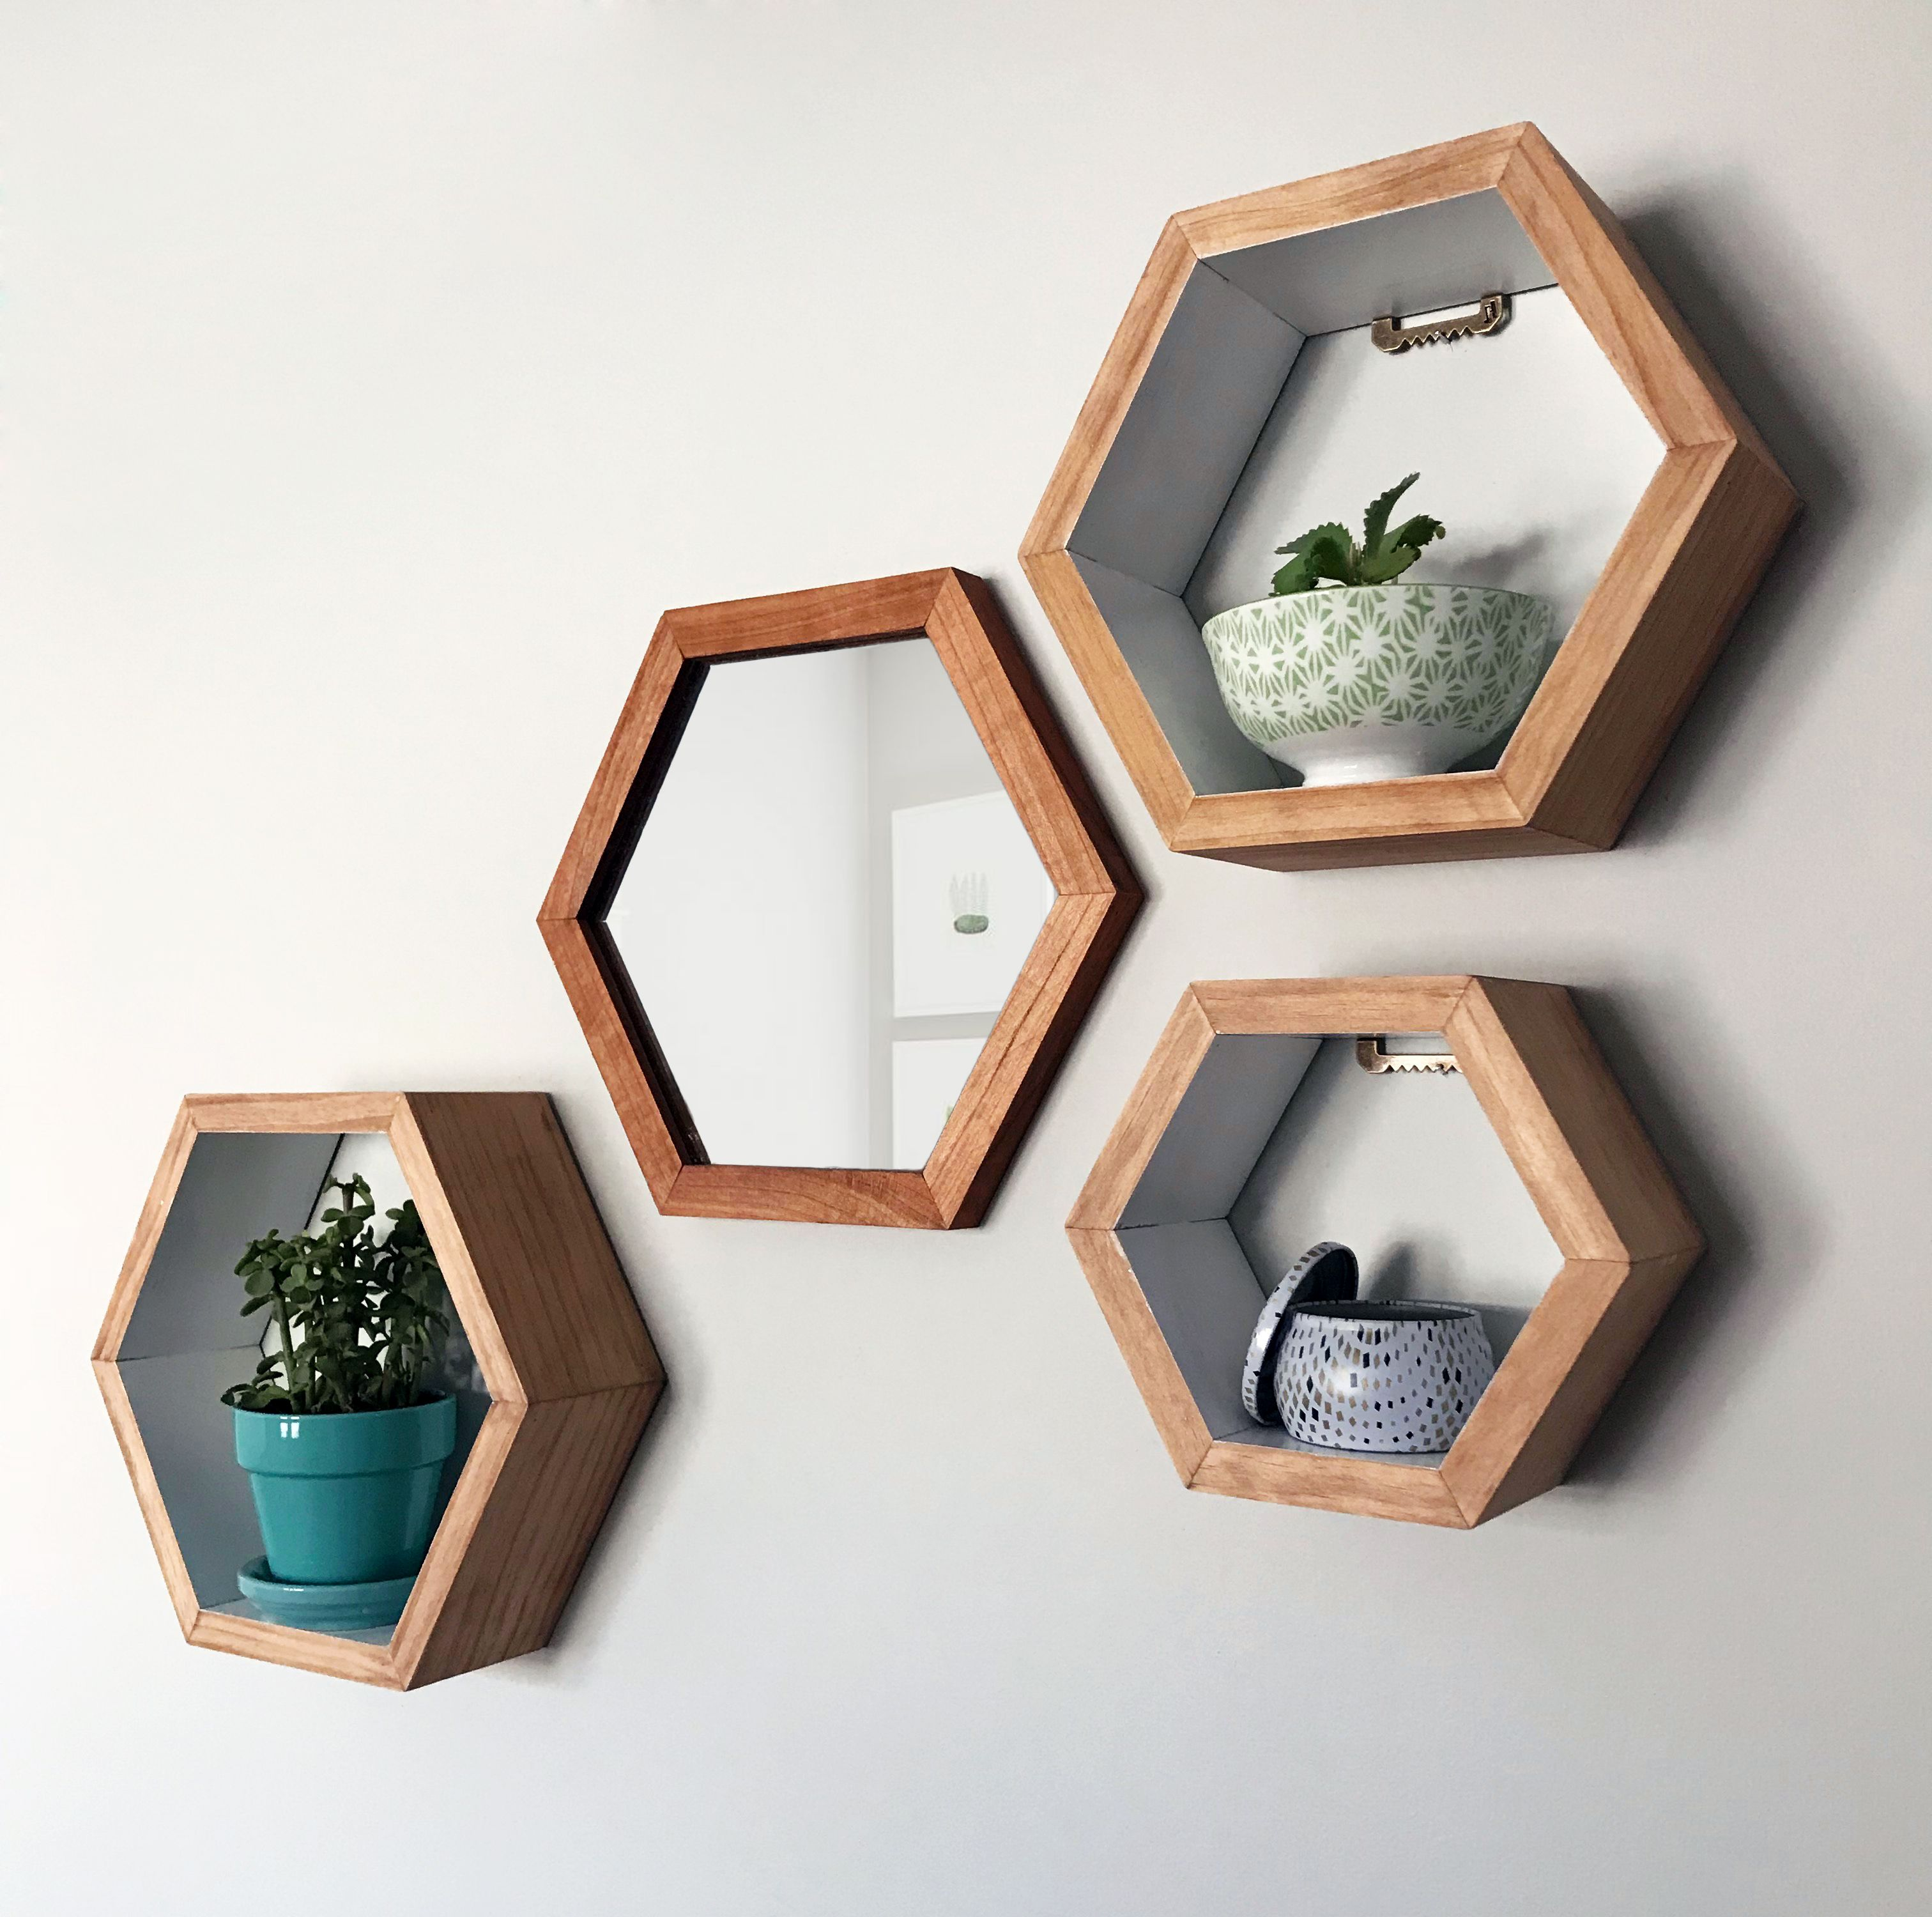 Cherry Wood Hexagon Mirror Paired With Hexagon Shelves With A